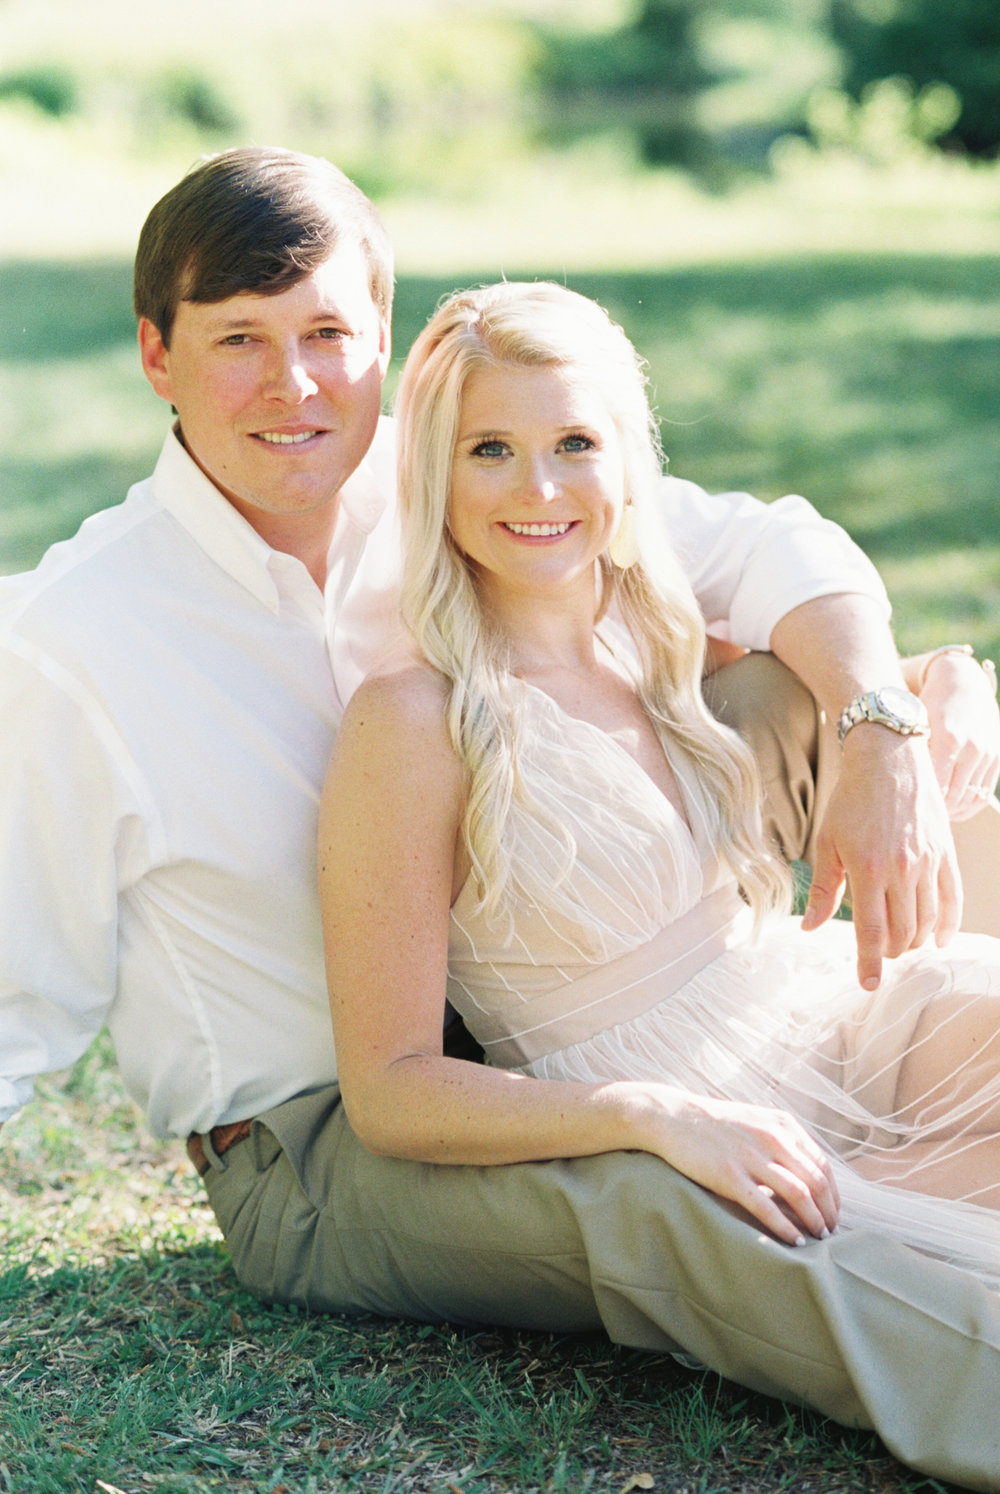 Erin_Johnny_Engagement_Dunaway_Gardens_Georgia_Film_Fallen_Photography-72.JPG